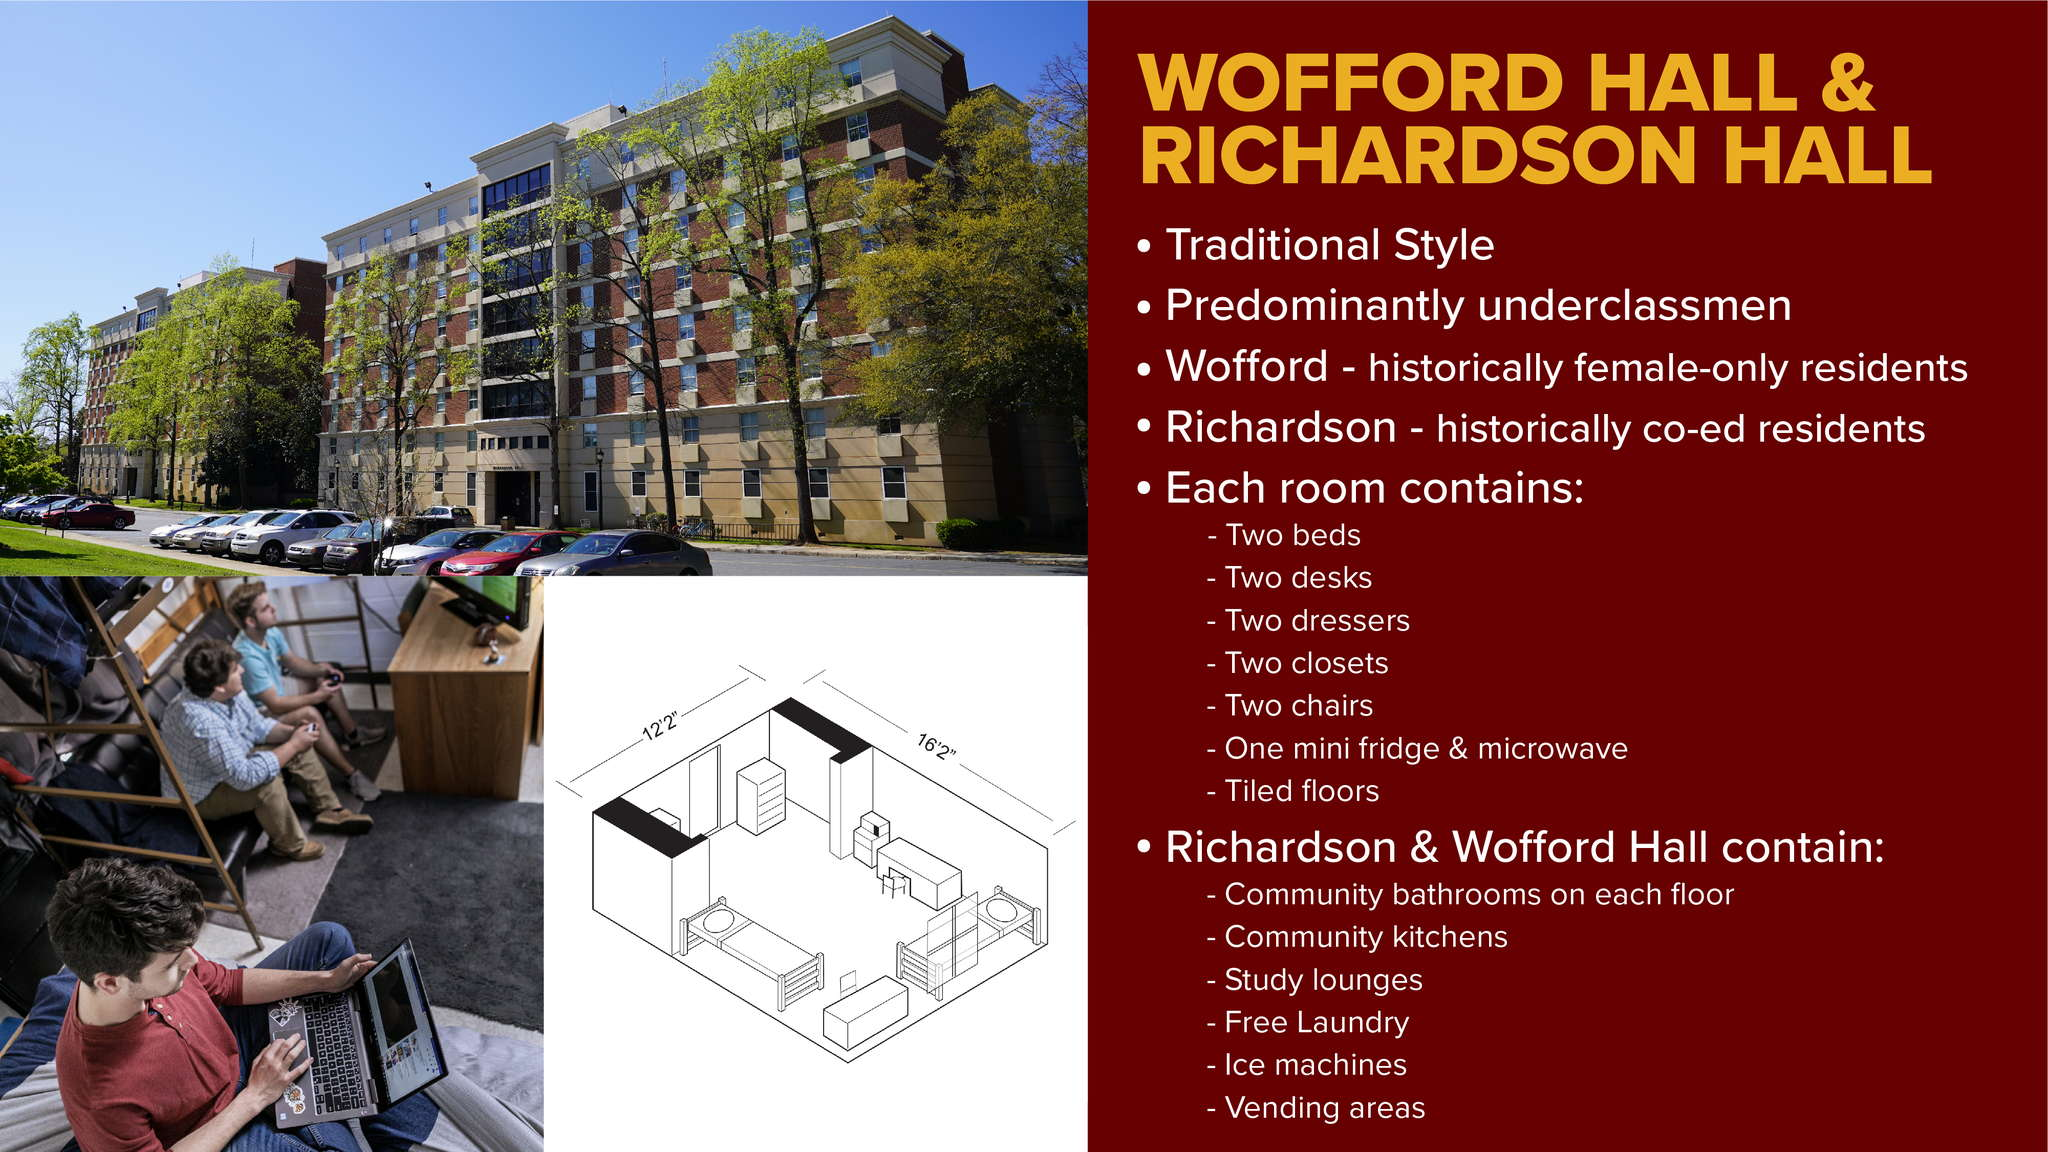 VWD_-_Residence_Hall_GFX_Wofford_and_Richardson